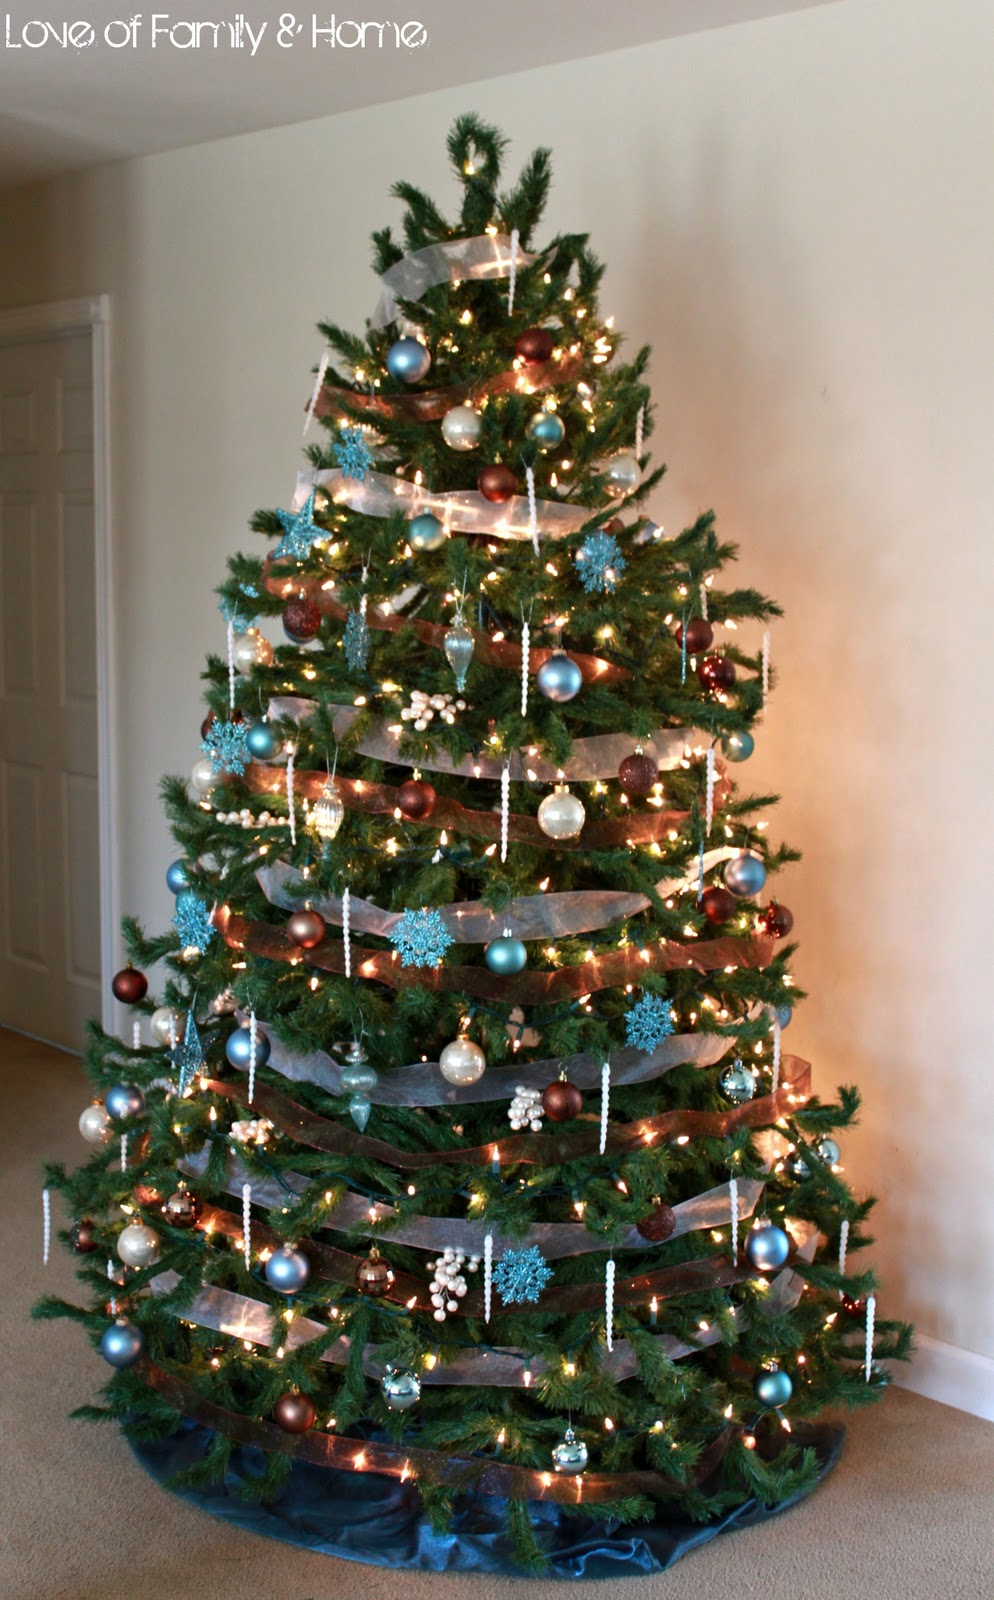 Green christmas tree with blue decorations : My christmas tree love of family home